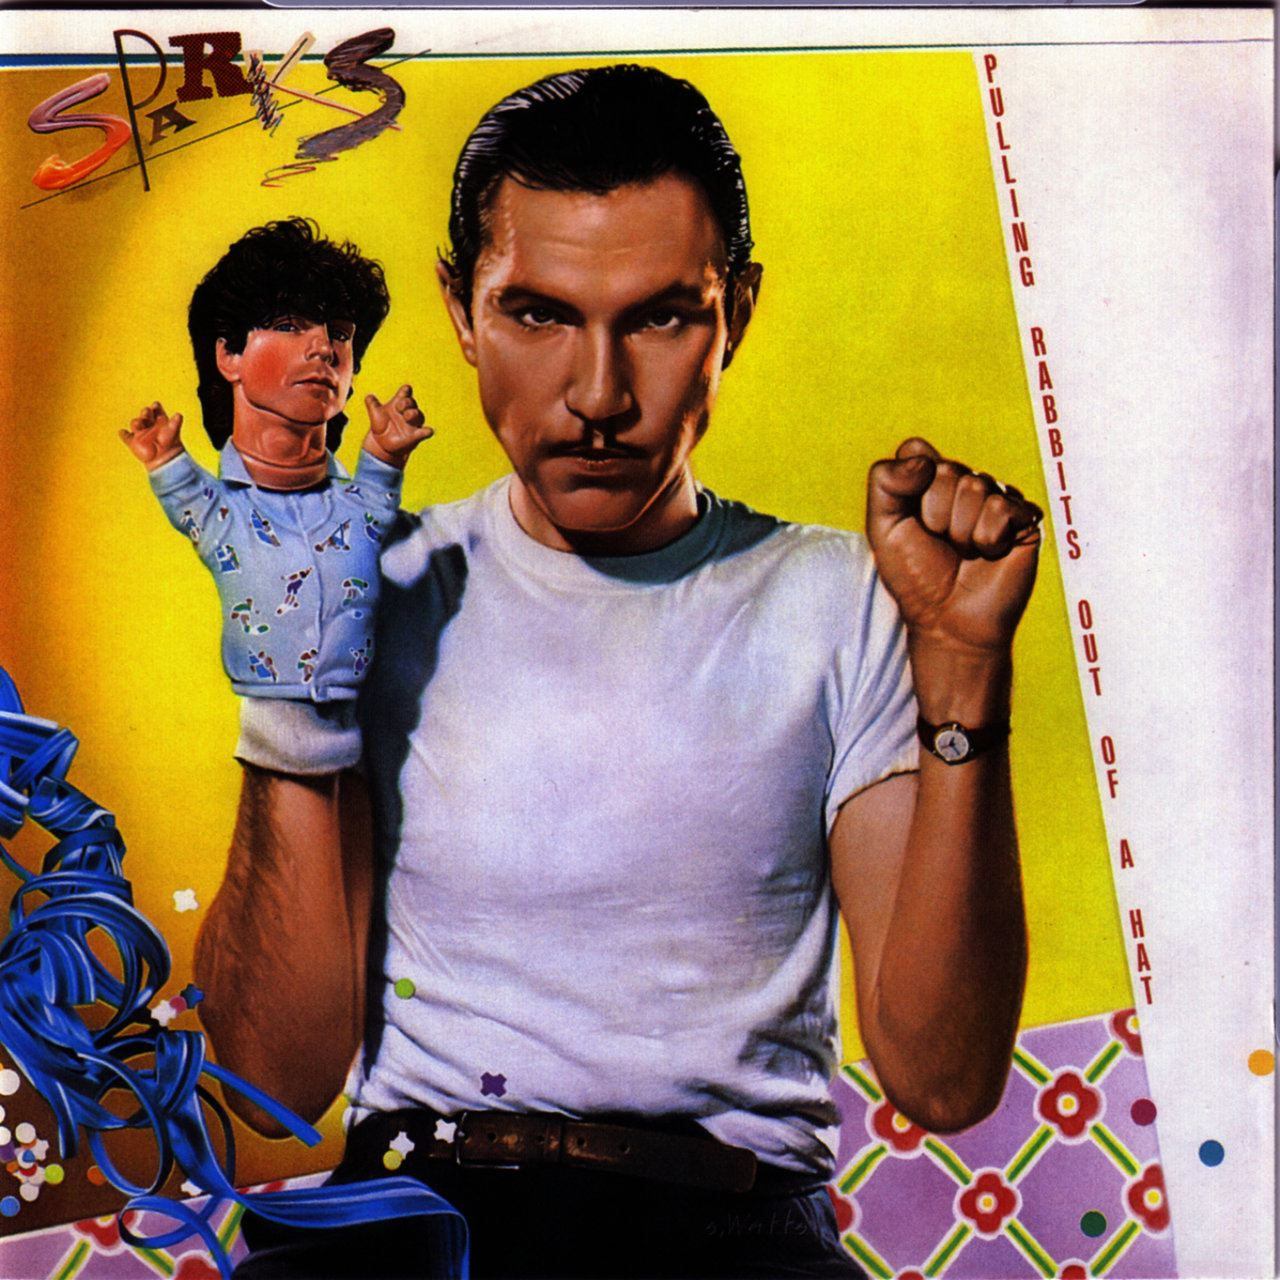 Album artwork for 'Pulling Rabbits Out of A Hat' by Sparks